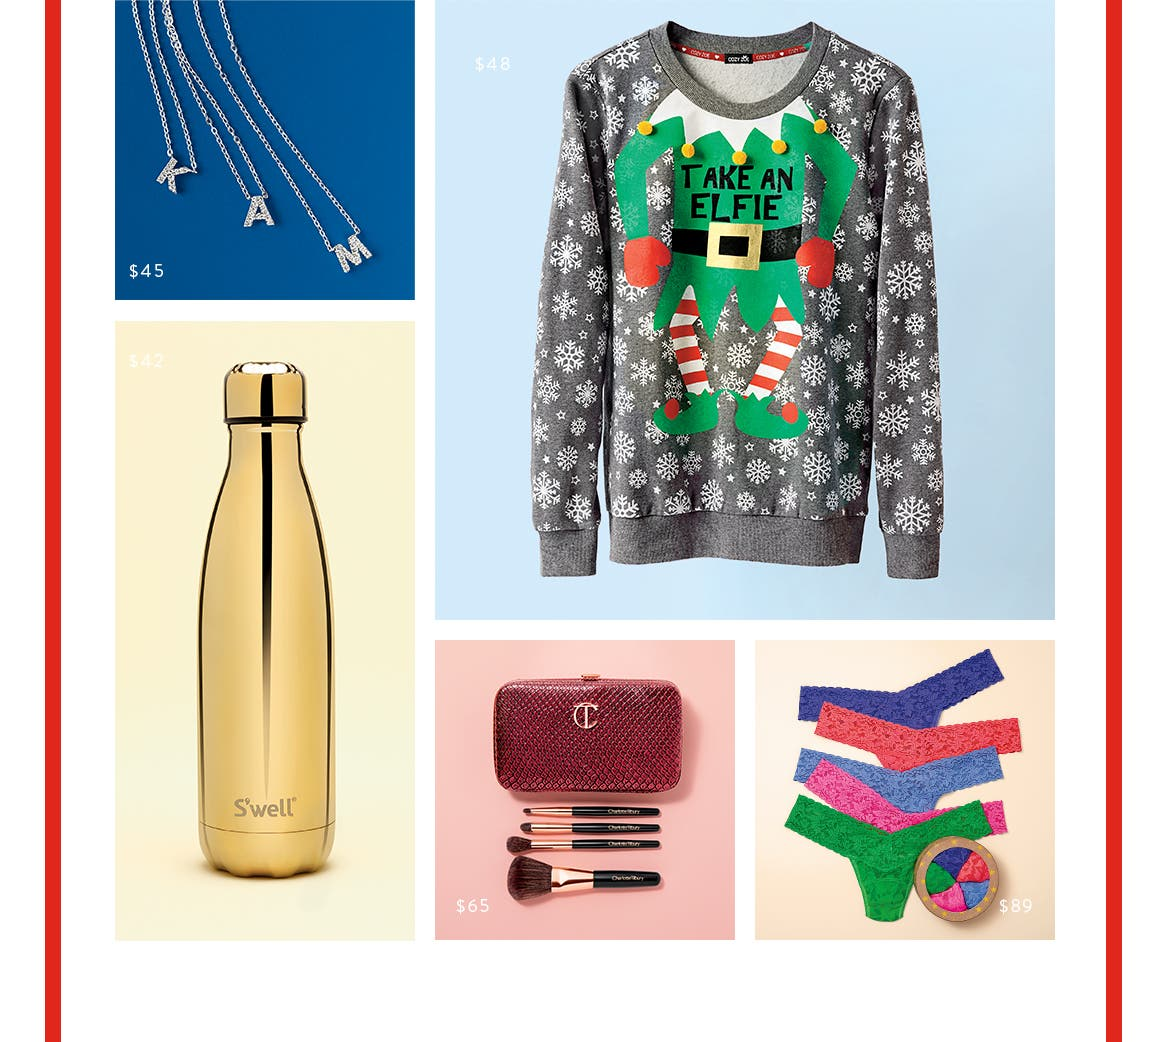 So many gifts, including selected styles under $100.